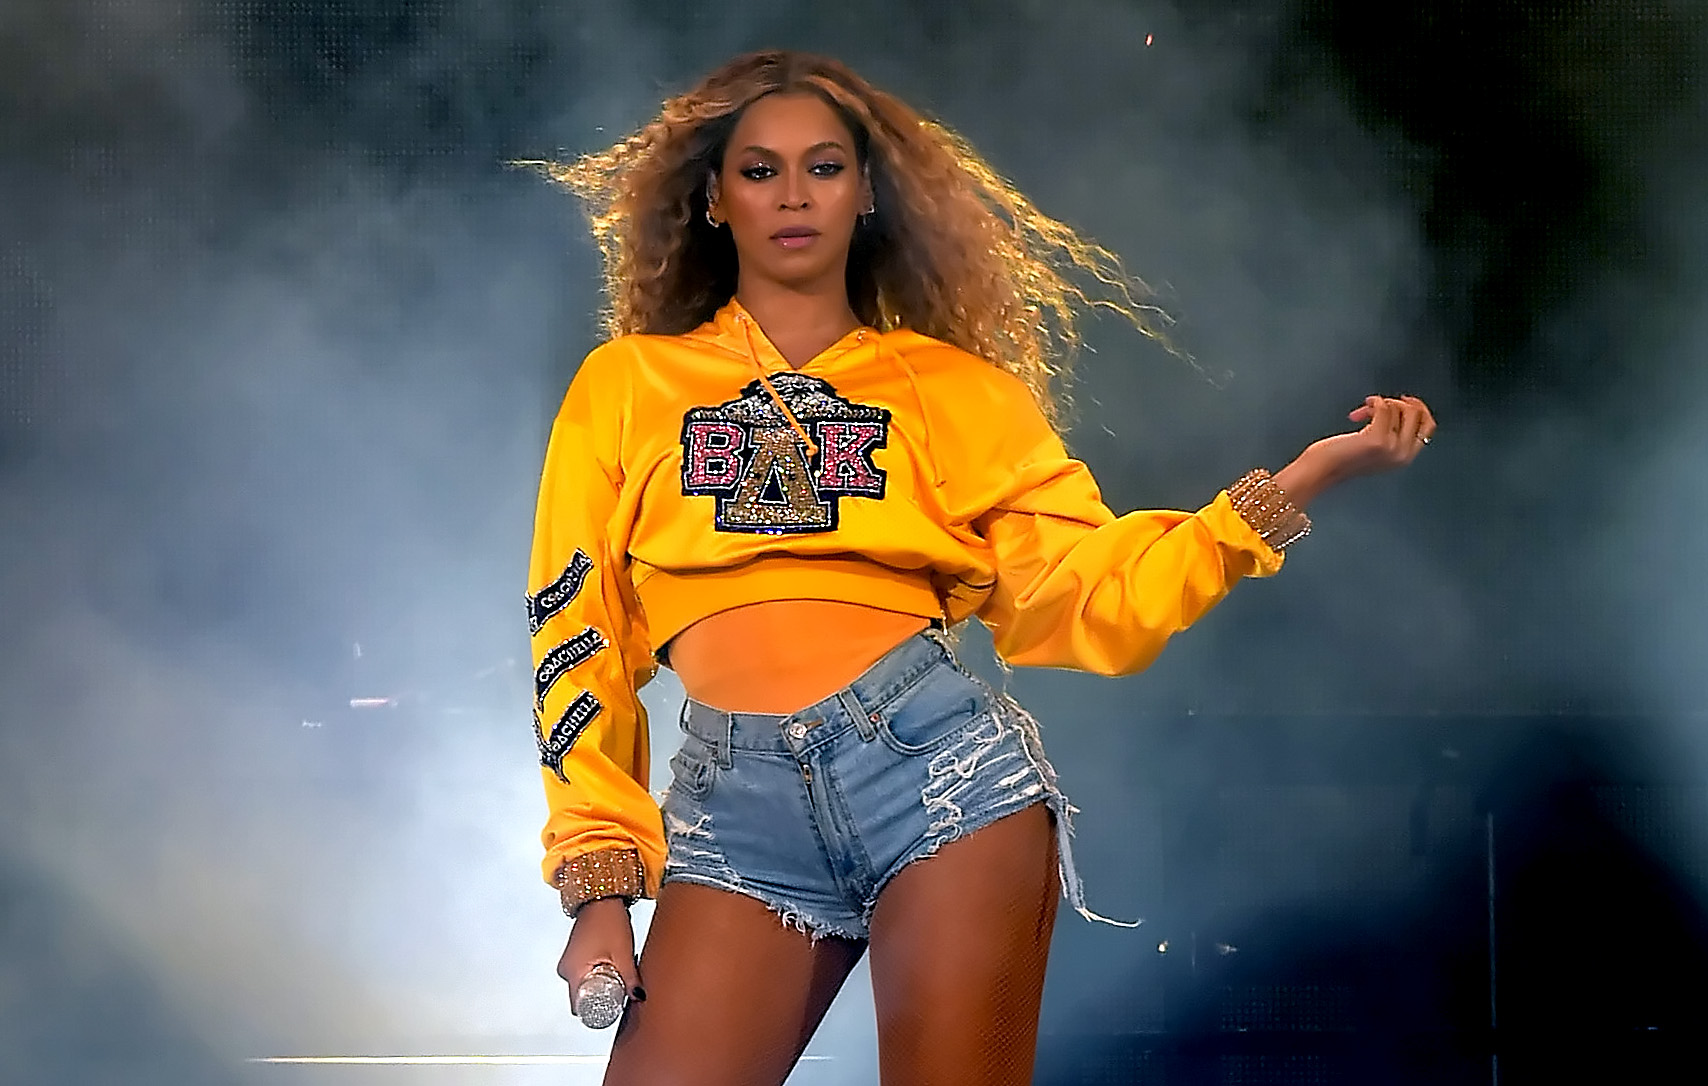 Beyoncé had a wardrobe malfunction during her Coachella performance, but you probably didn't notice it